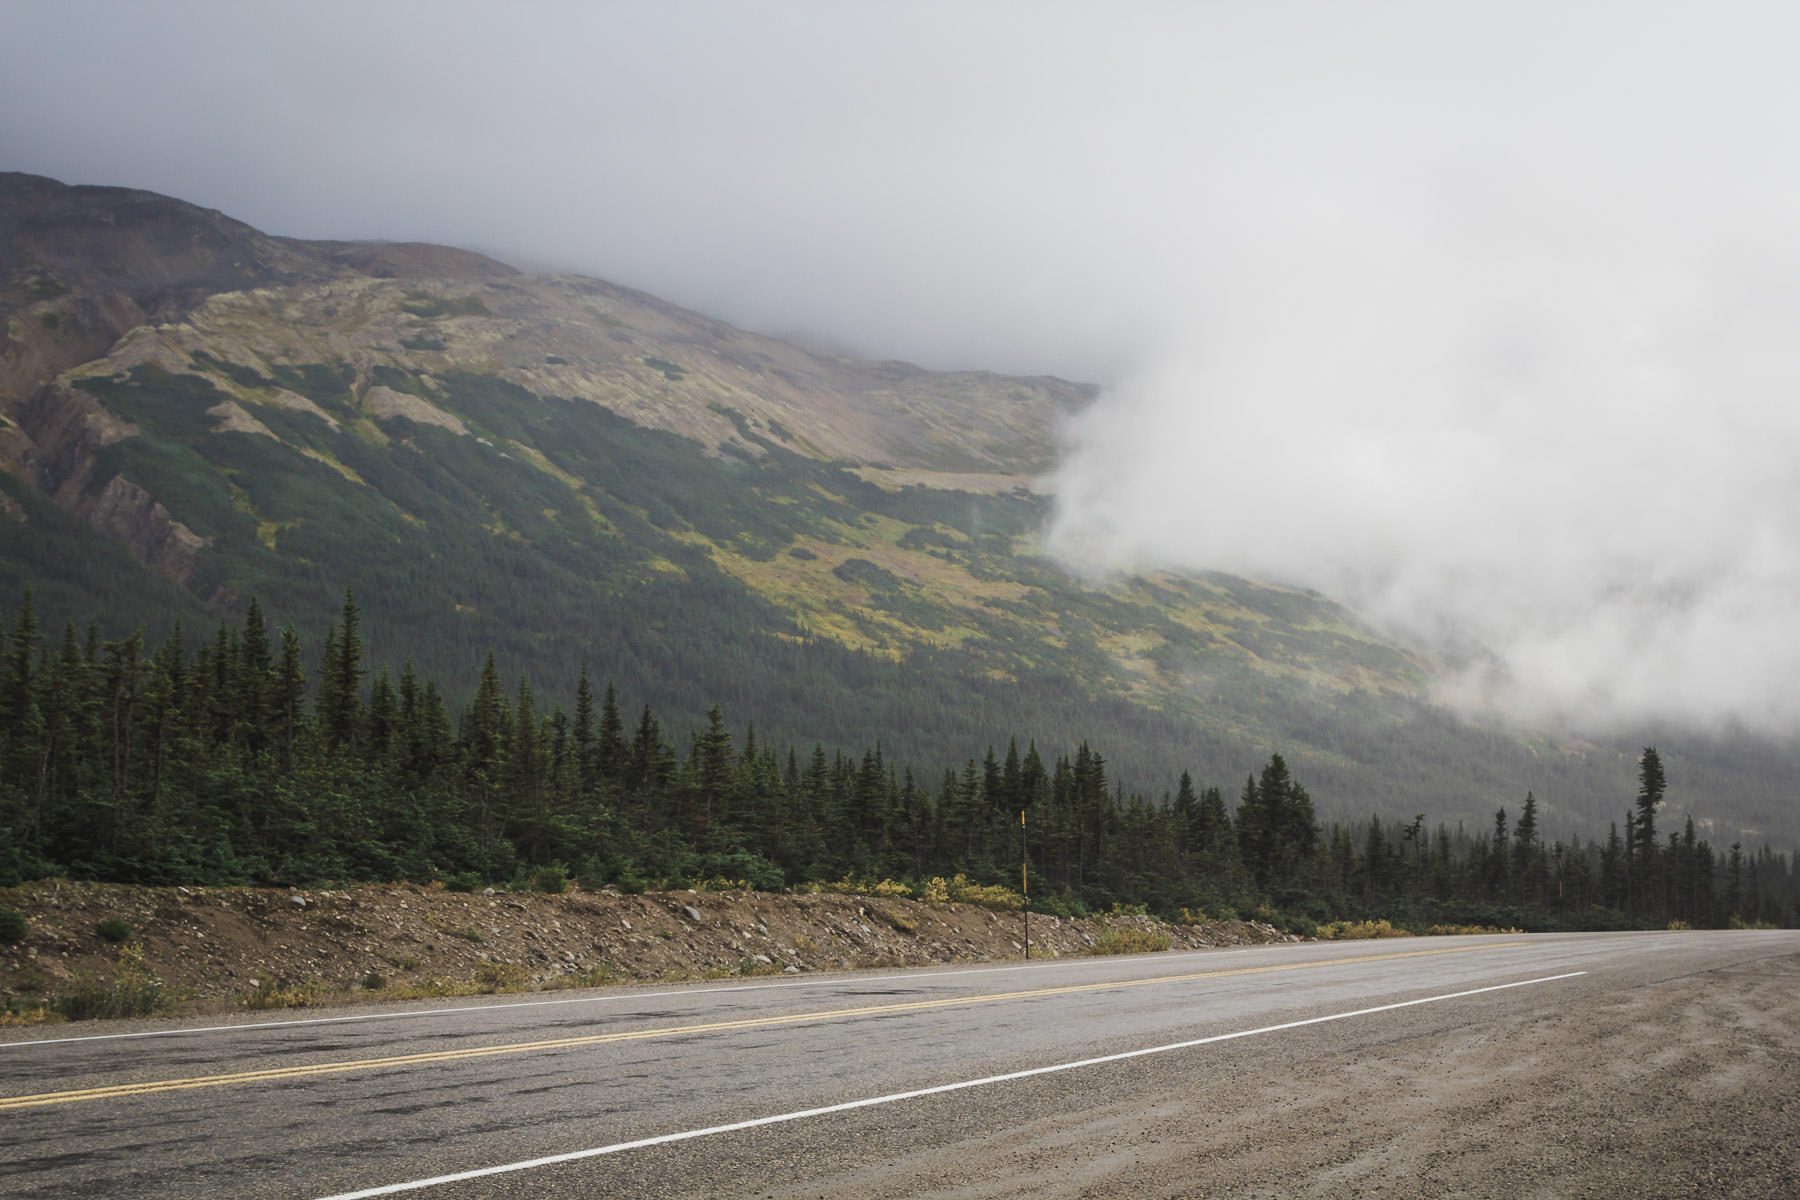 Clouds descend on the Klondike Highway as it wends through the mountains of British Columbia's Stikine Region.